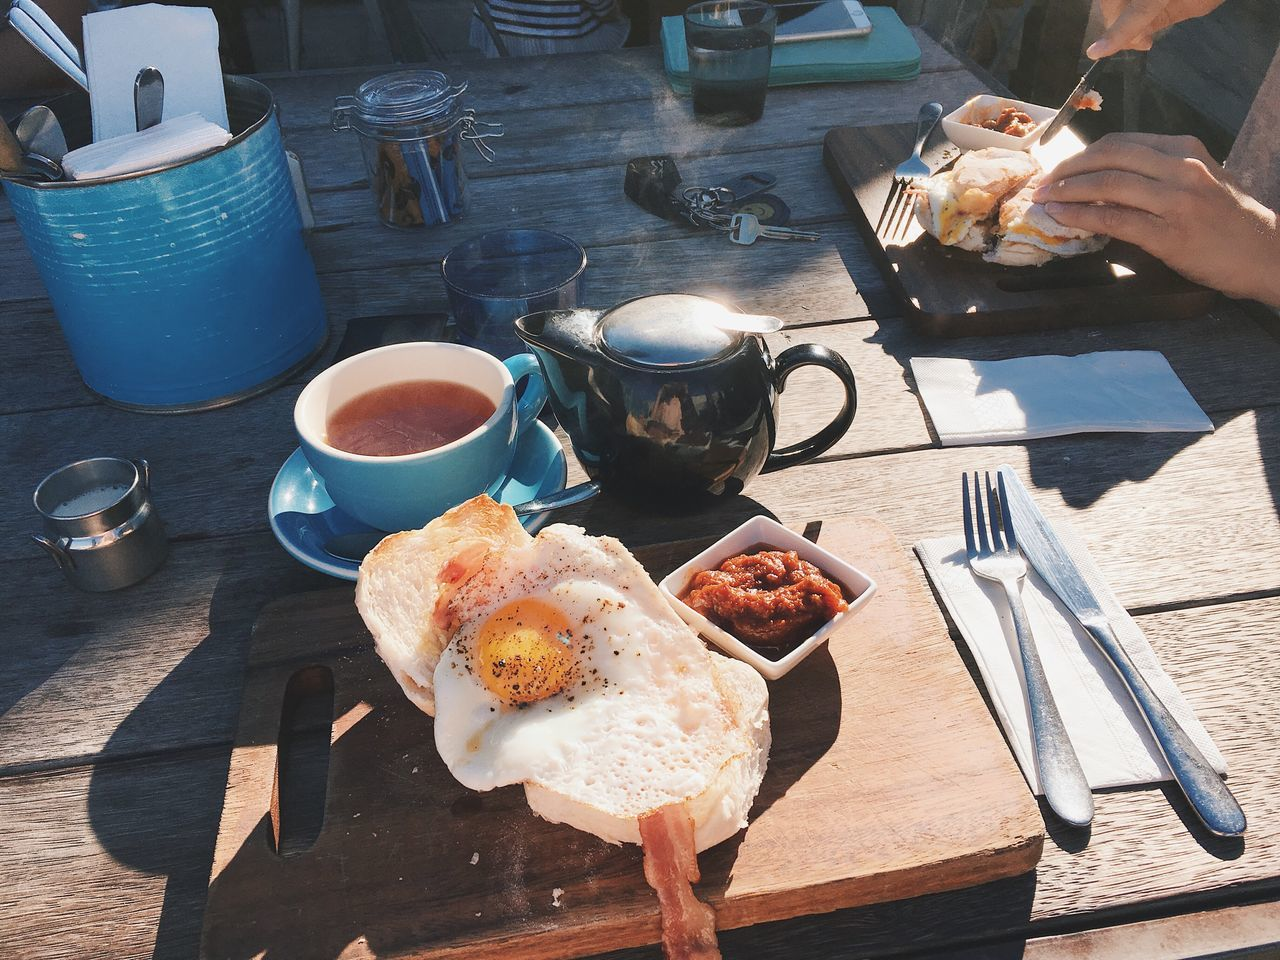 Breakfast Brunch Eggs Bacon Food Food And Drink Table Eating Outdoors Tea